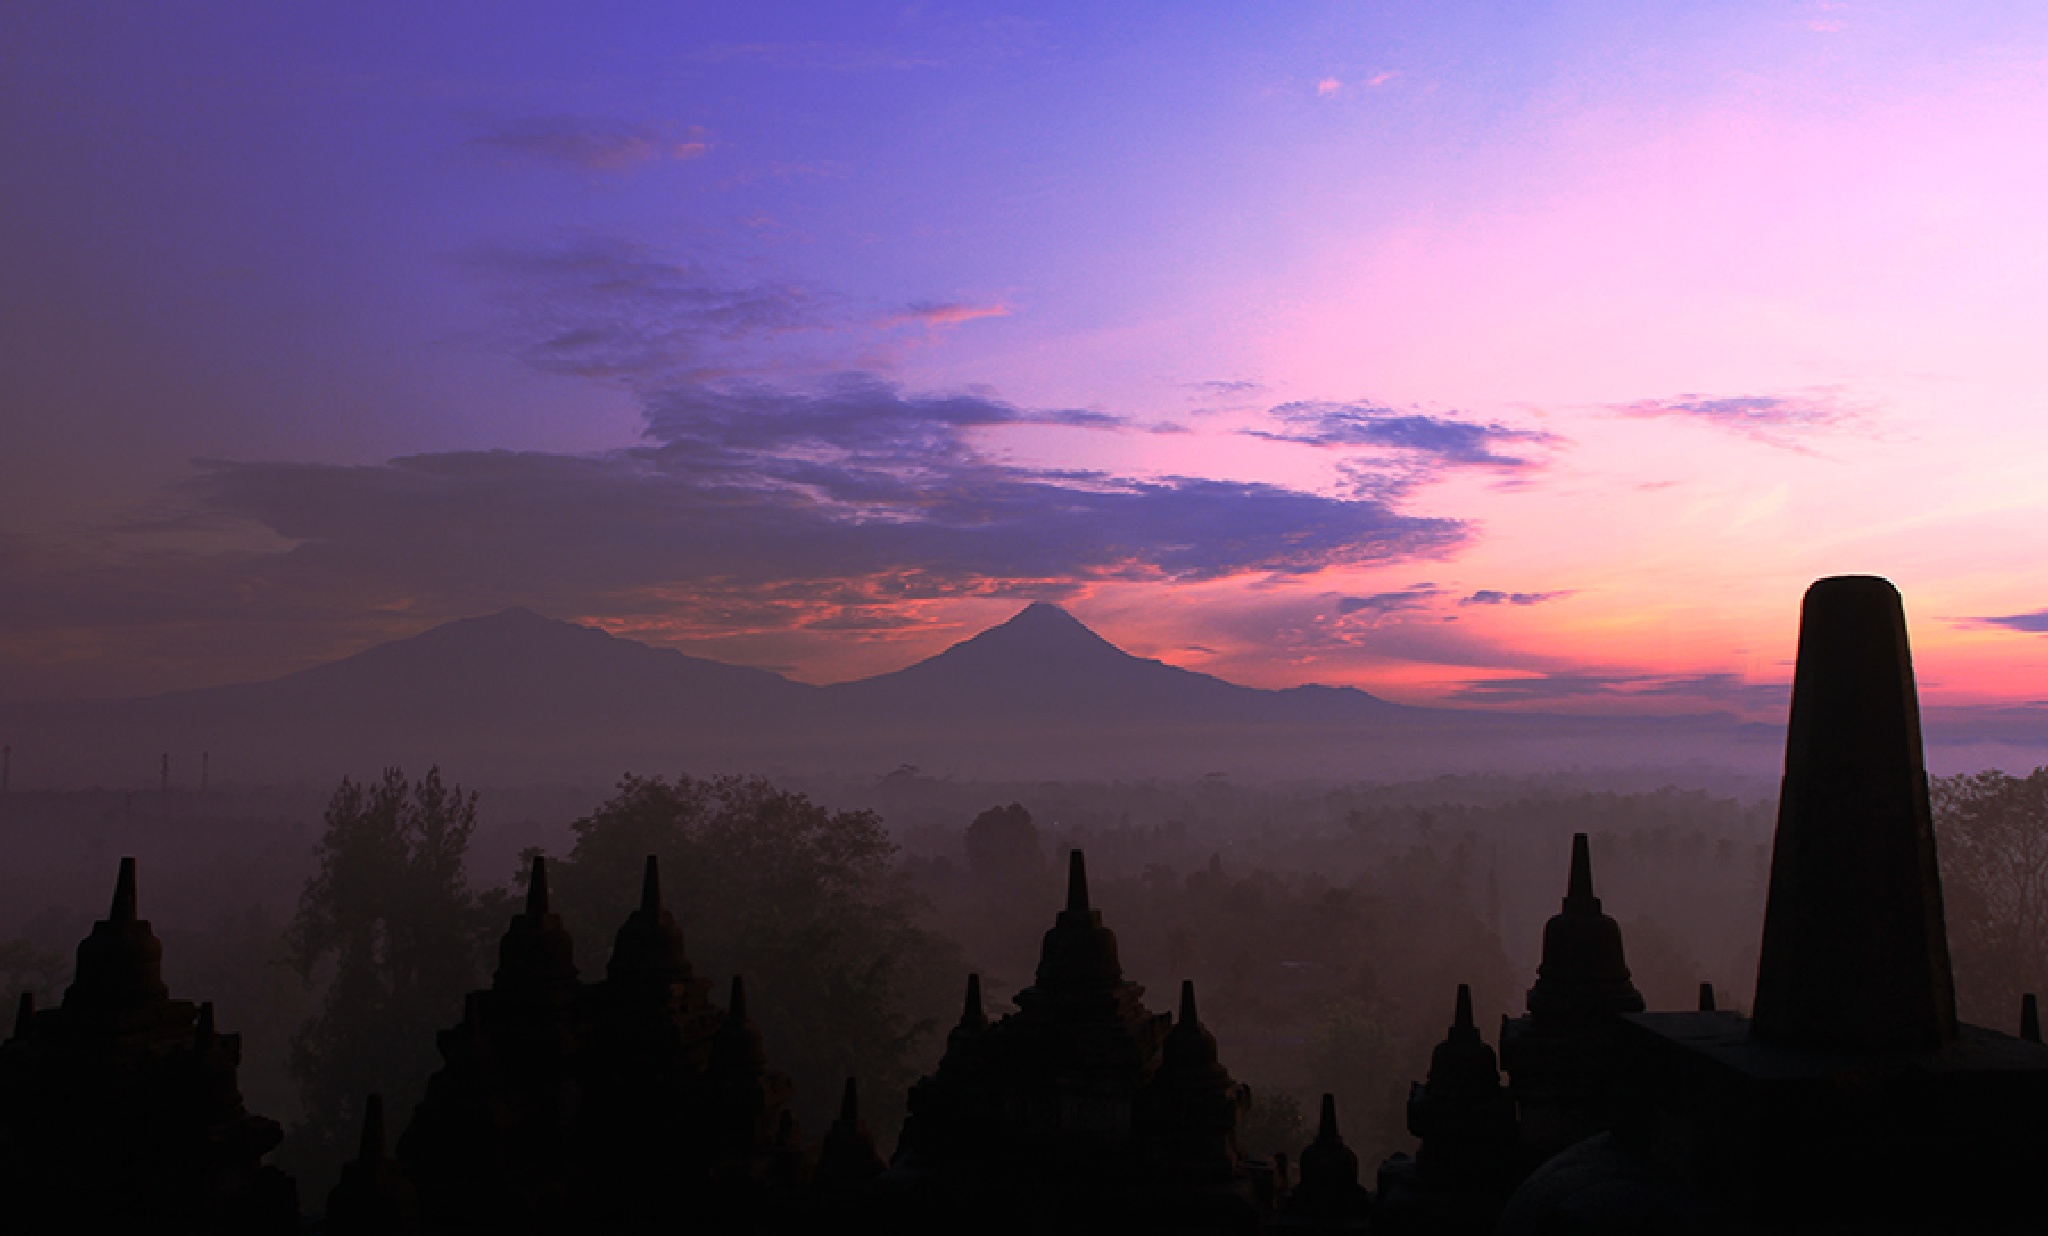 Borobudur Tample by Iwan Tunk